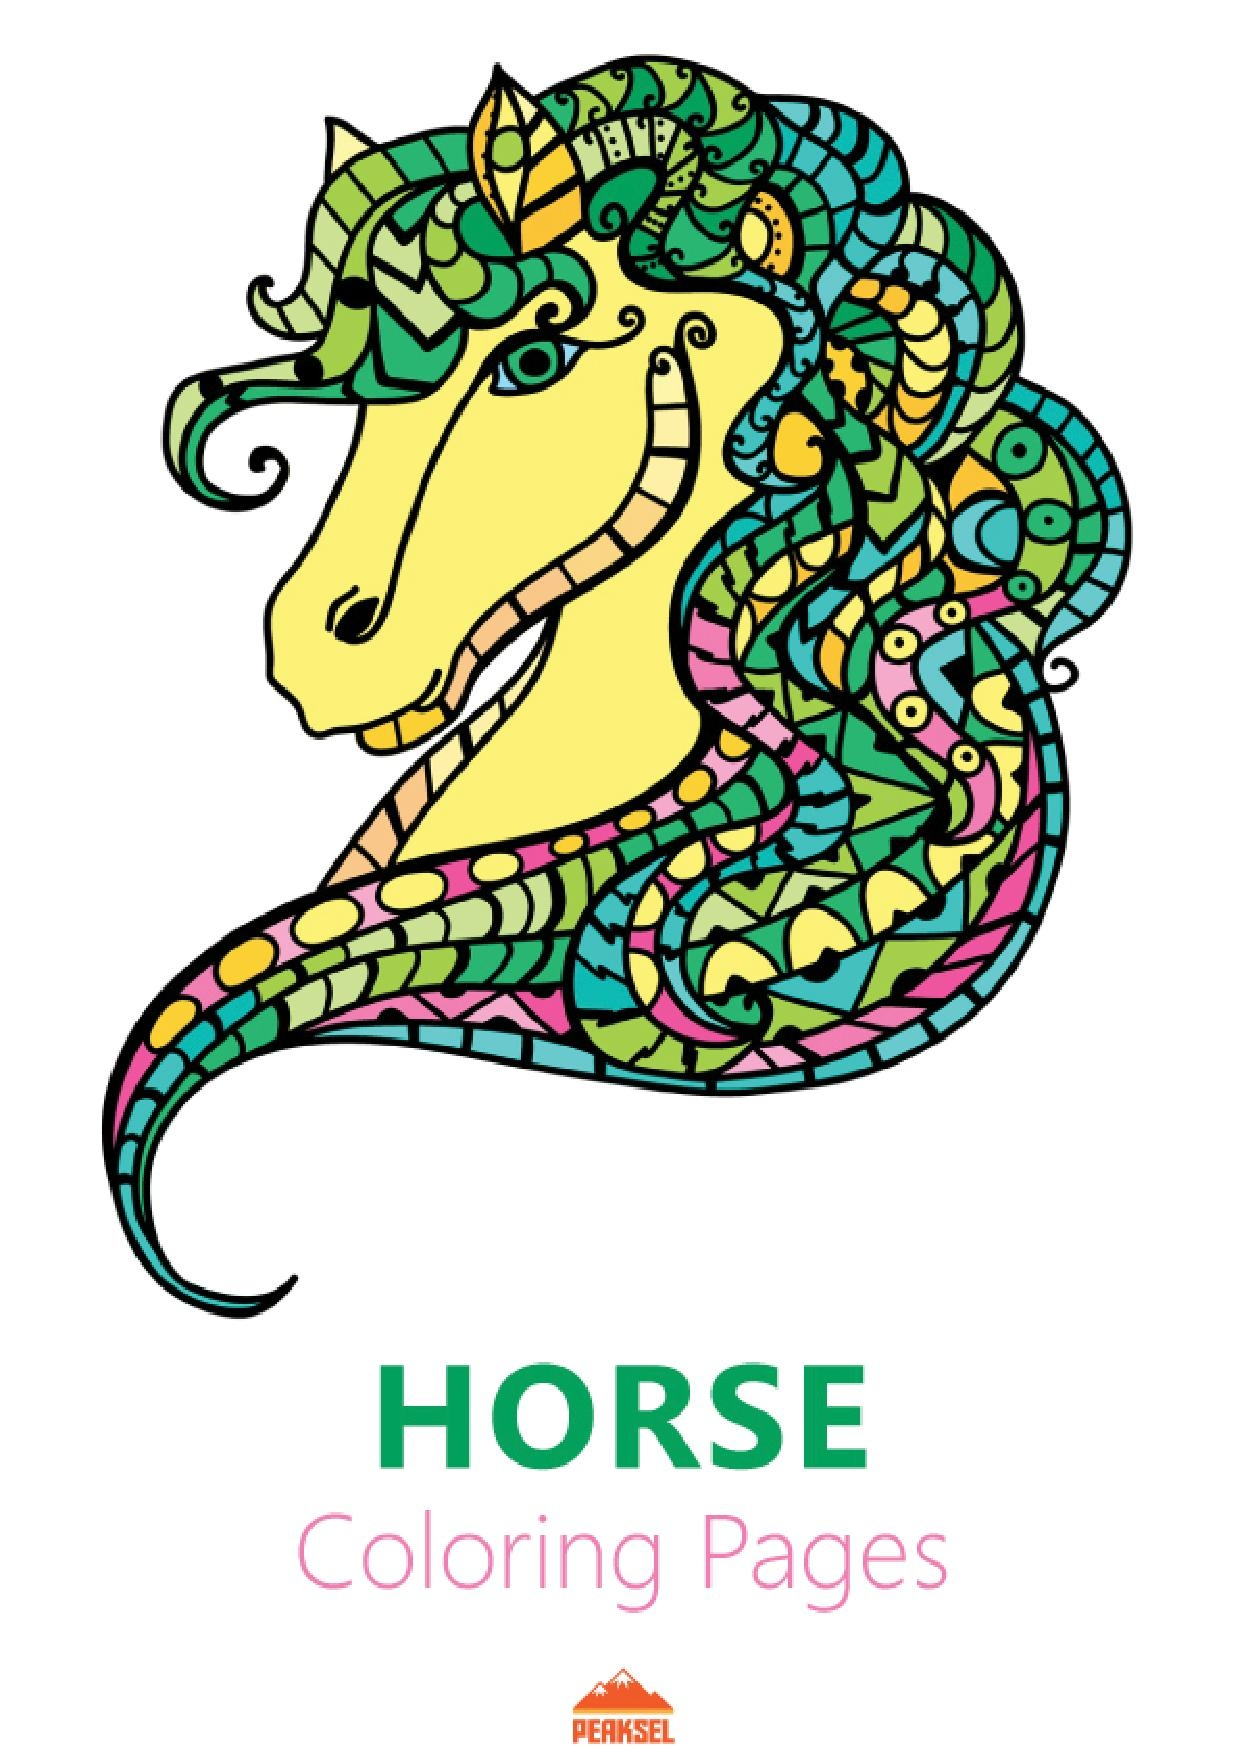 File:Horse Coloring Pages - Printable Coloring Book for Adults.pdf ...